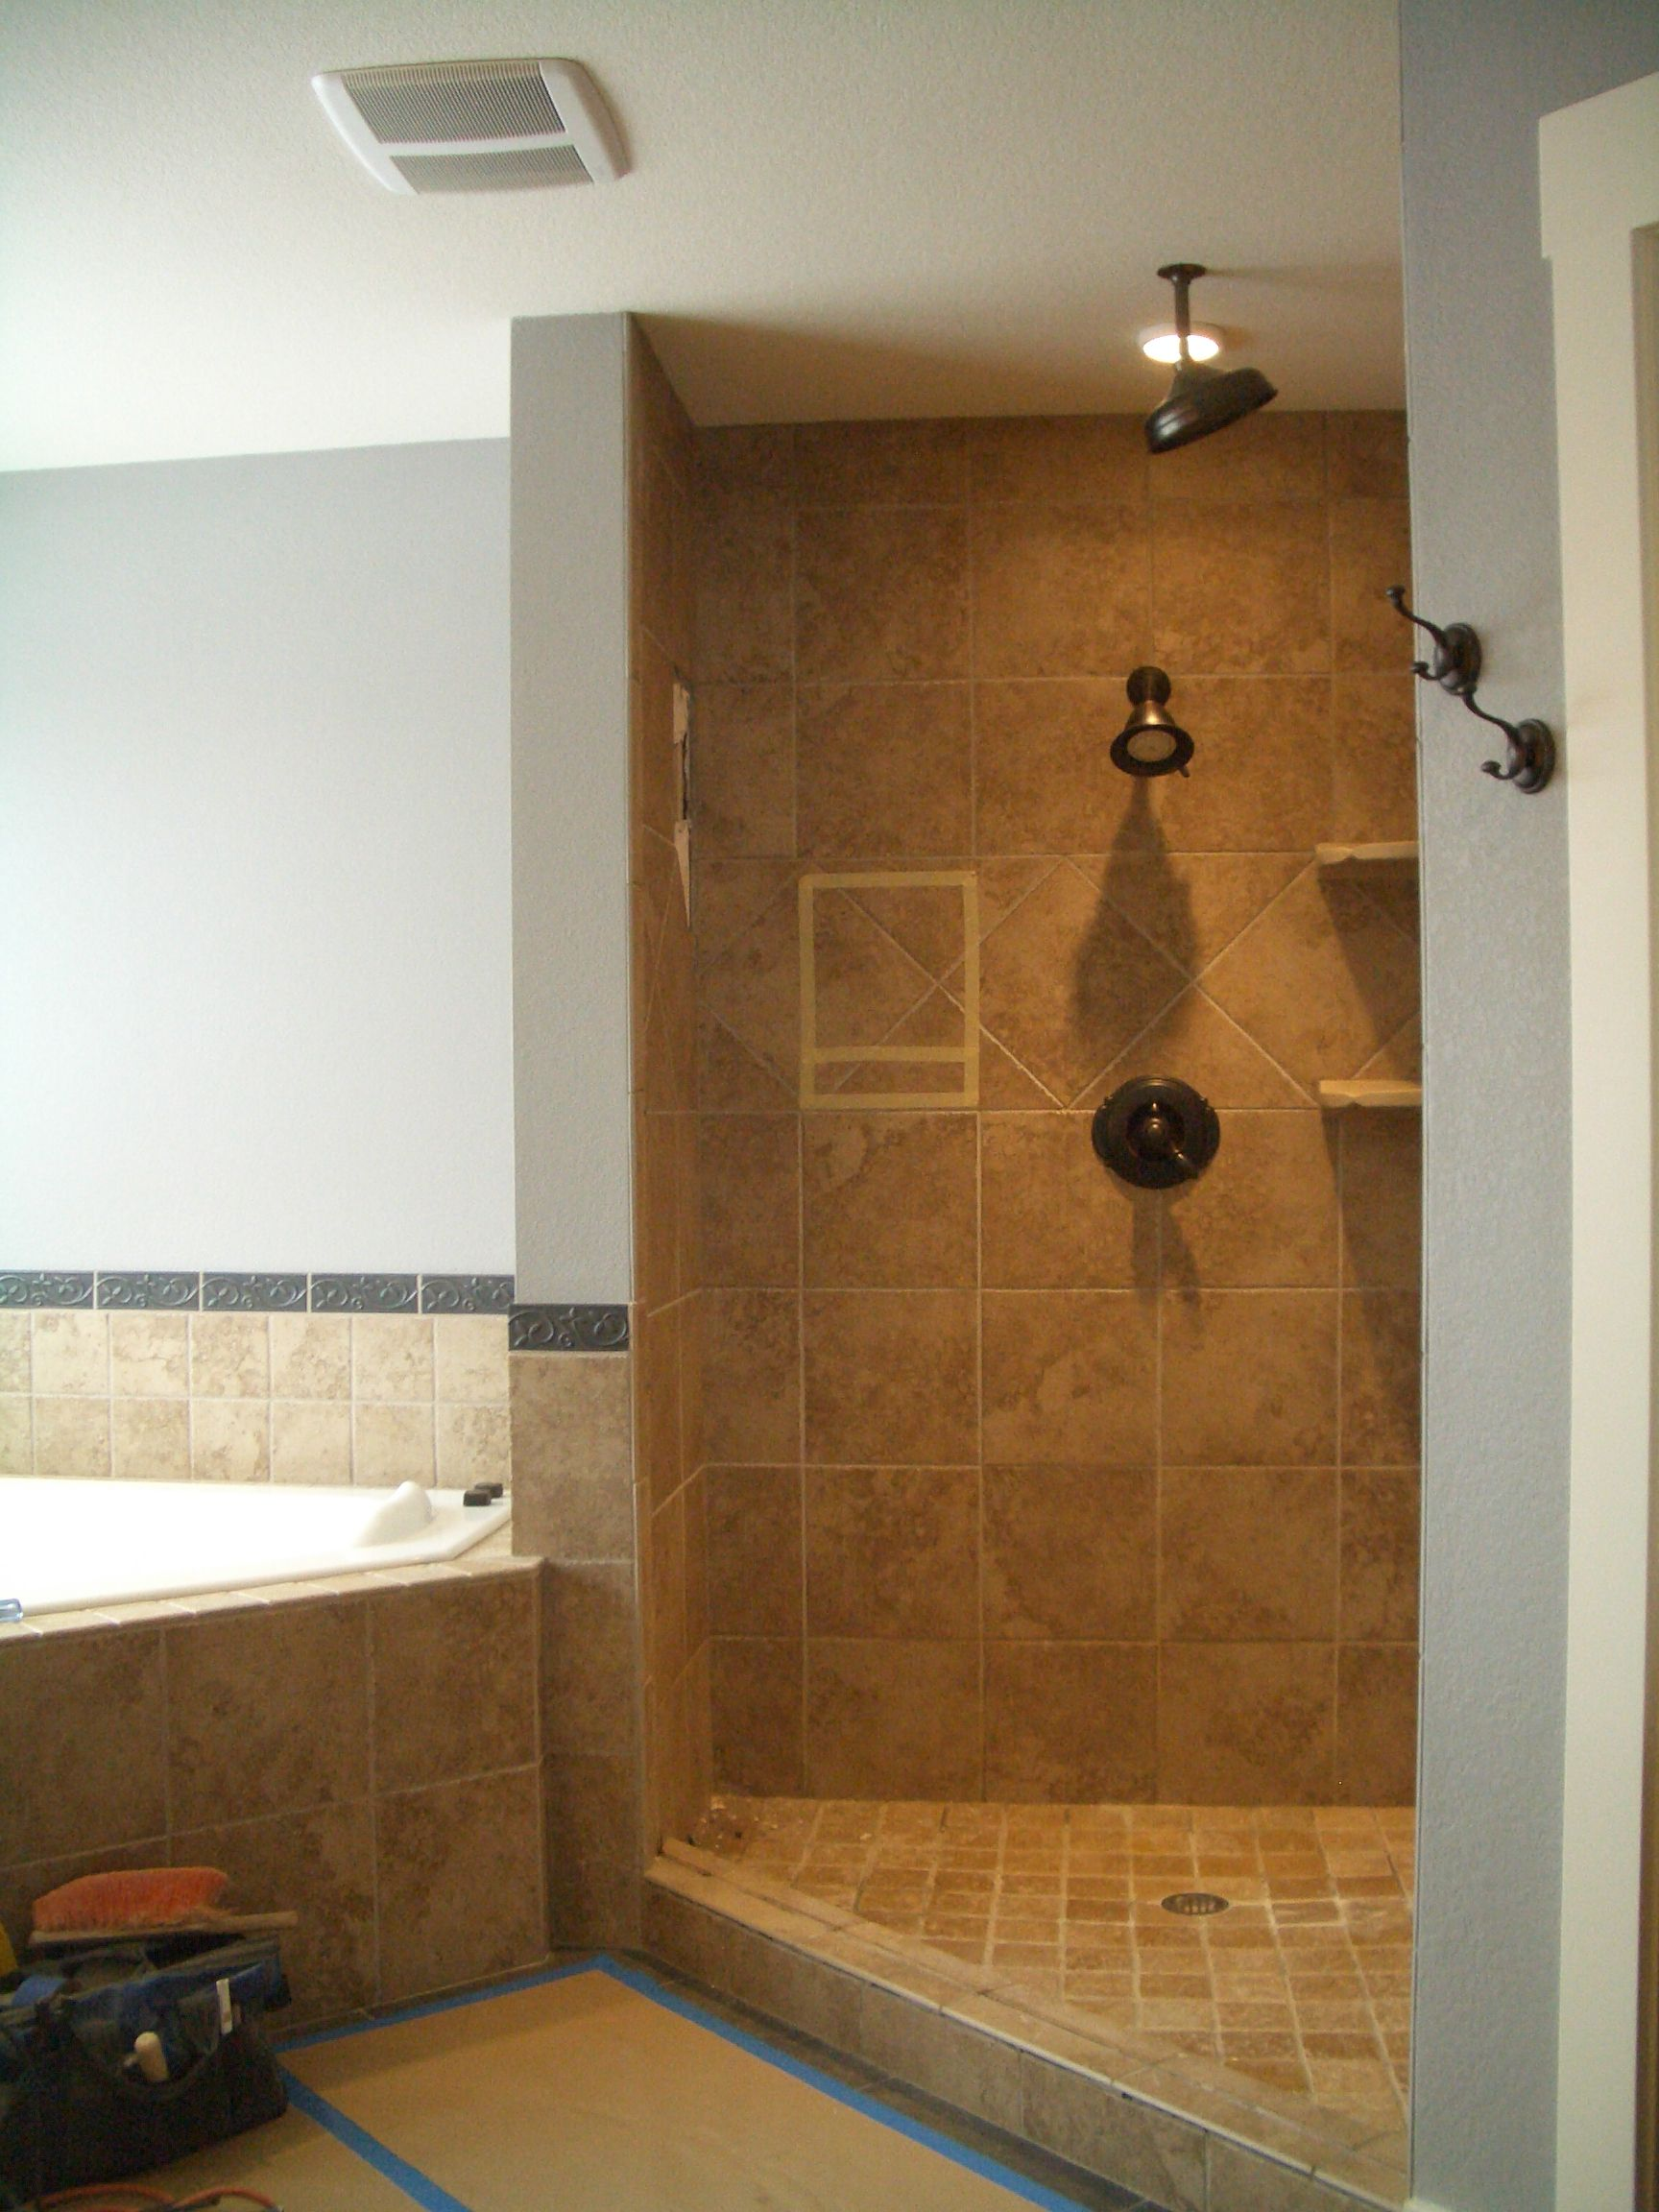 Remodel Bathroom Shower bathroom shower remodel cost | ideas | pinterest | bathroom shower